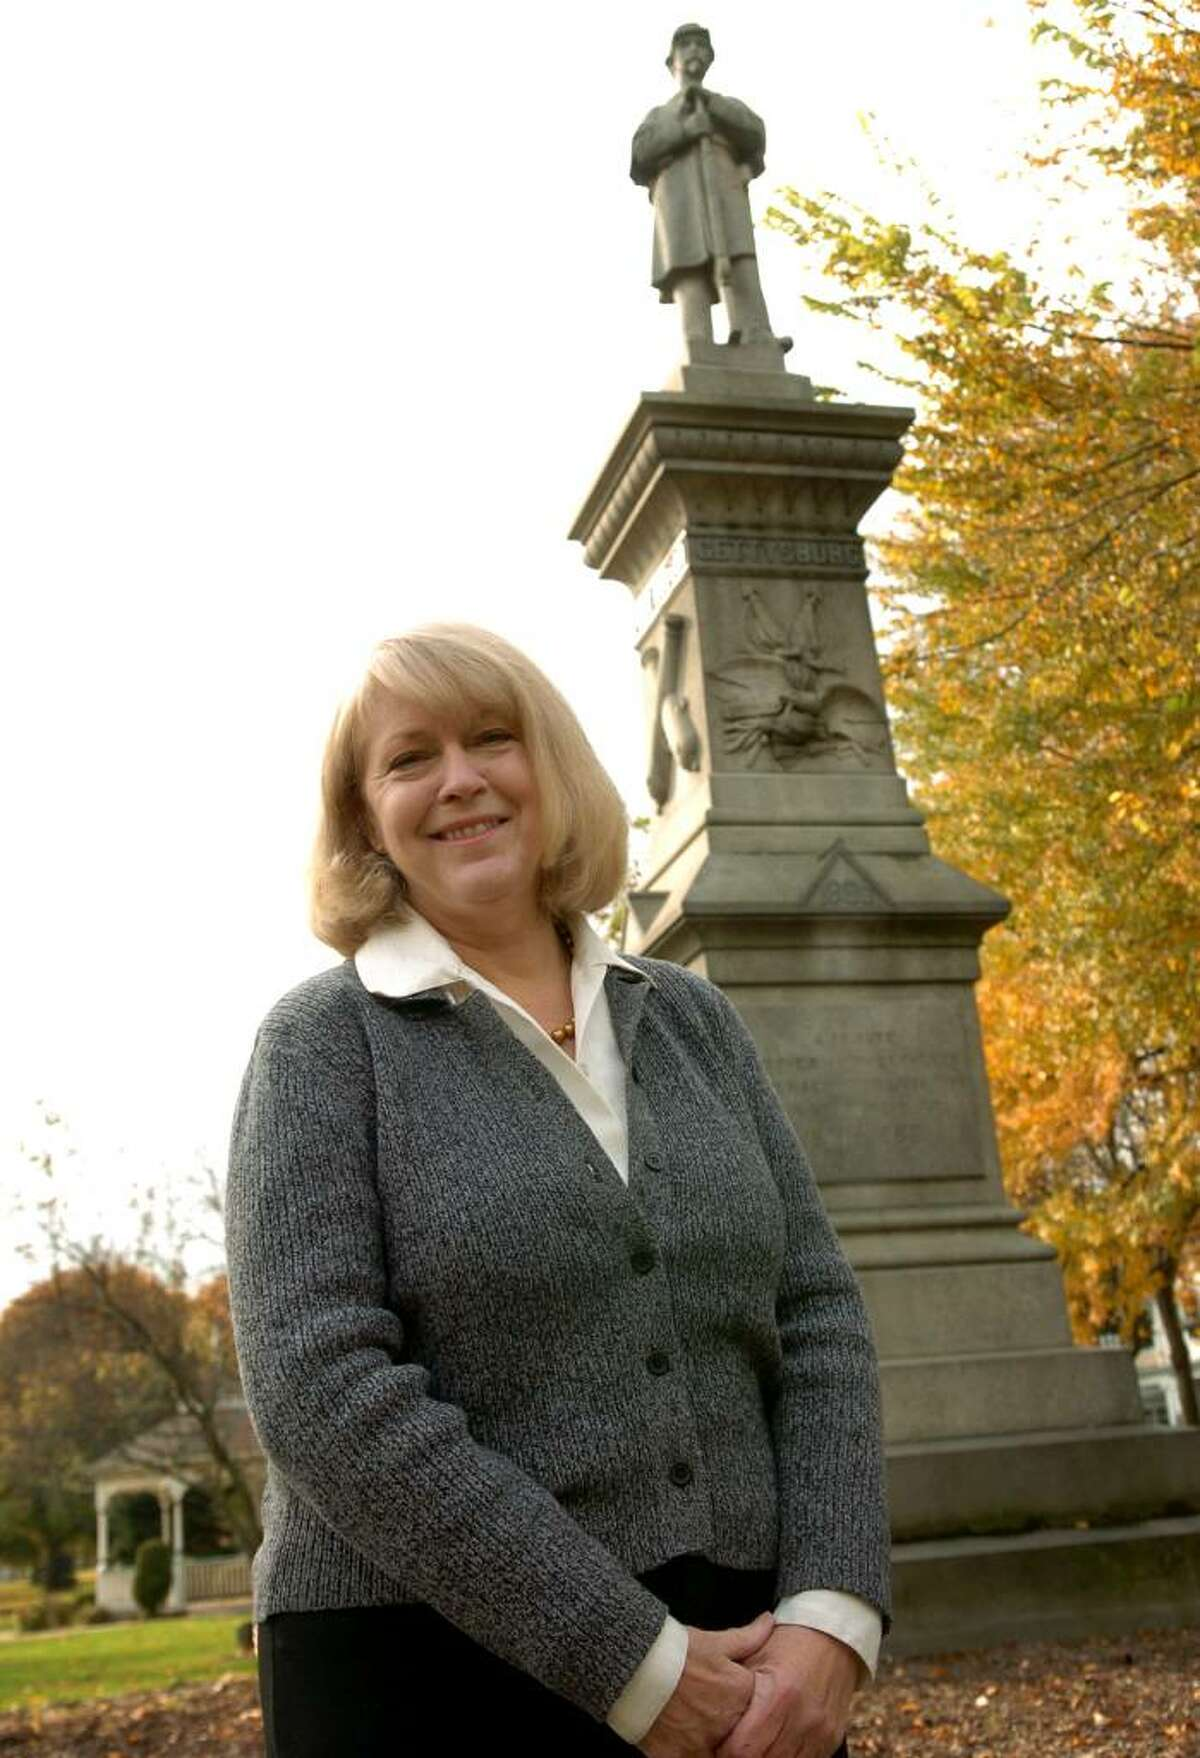 Sharon B. Smith of Milford, who recently published a book chronicling Connecticut's role in the Civil War, by the Civil War monument on the green in Milford.